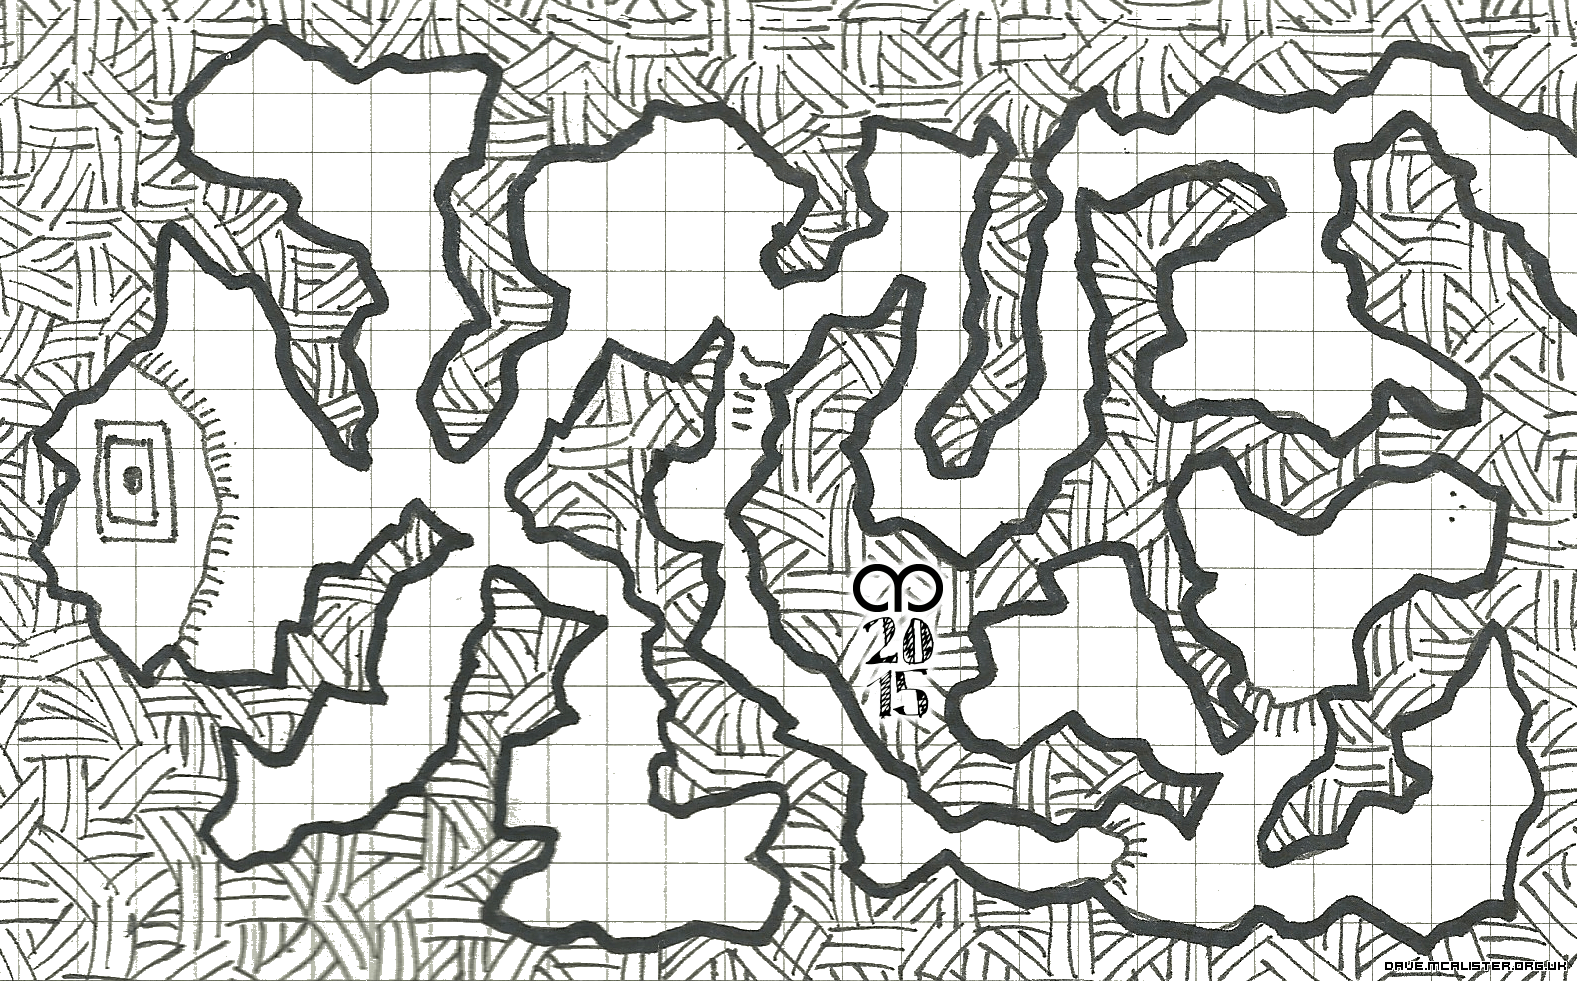 Natural Cave System